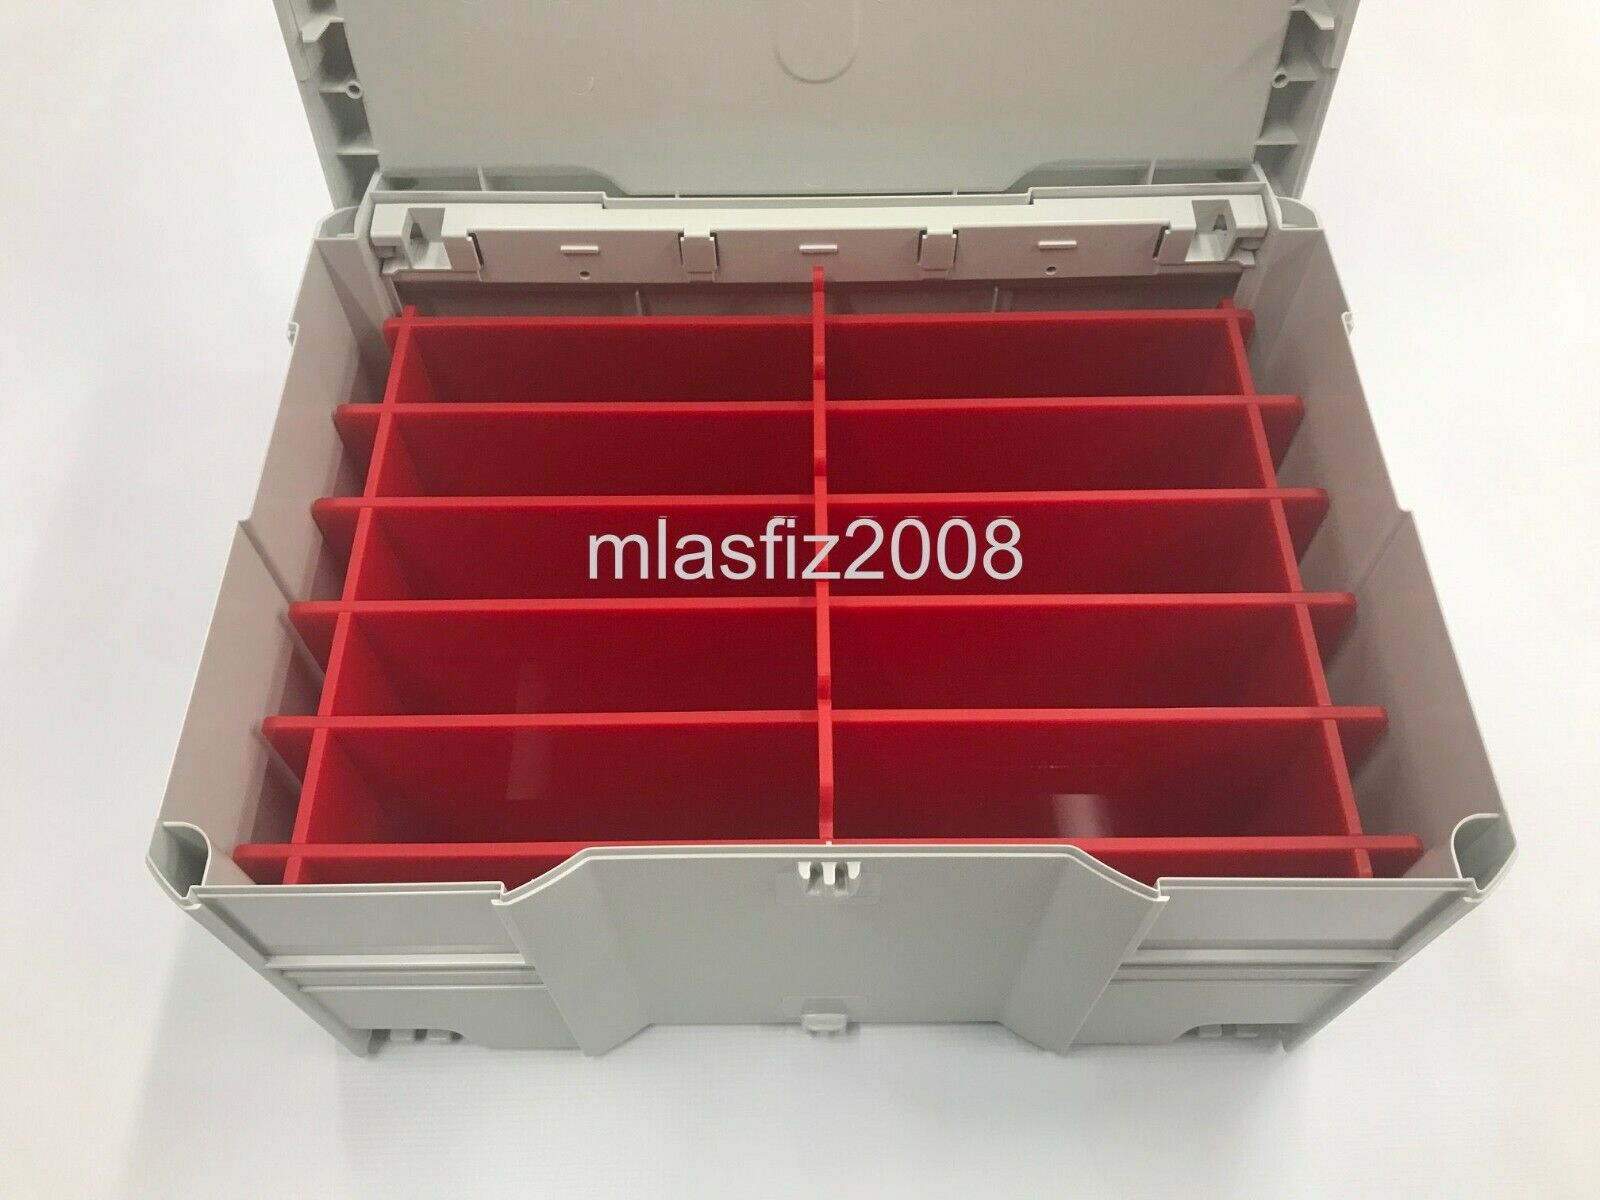 Triton 547458 Dividers TLOCDIV Inserts for Dividing the Systainer T-LOC